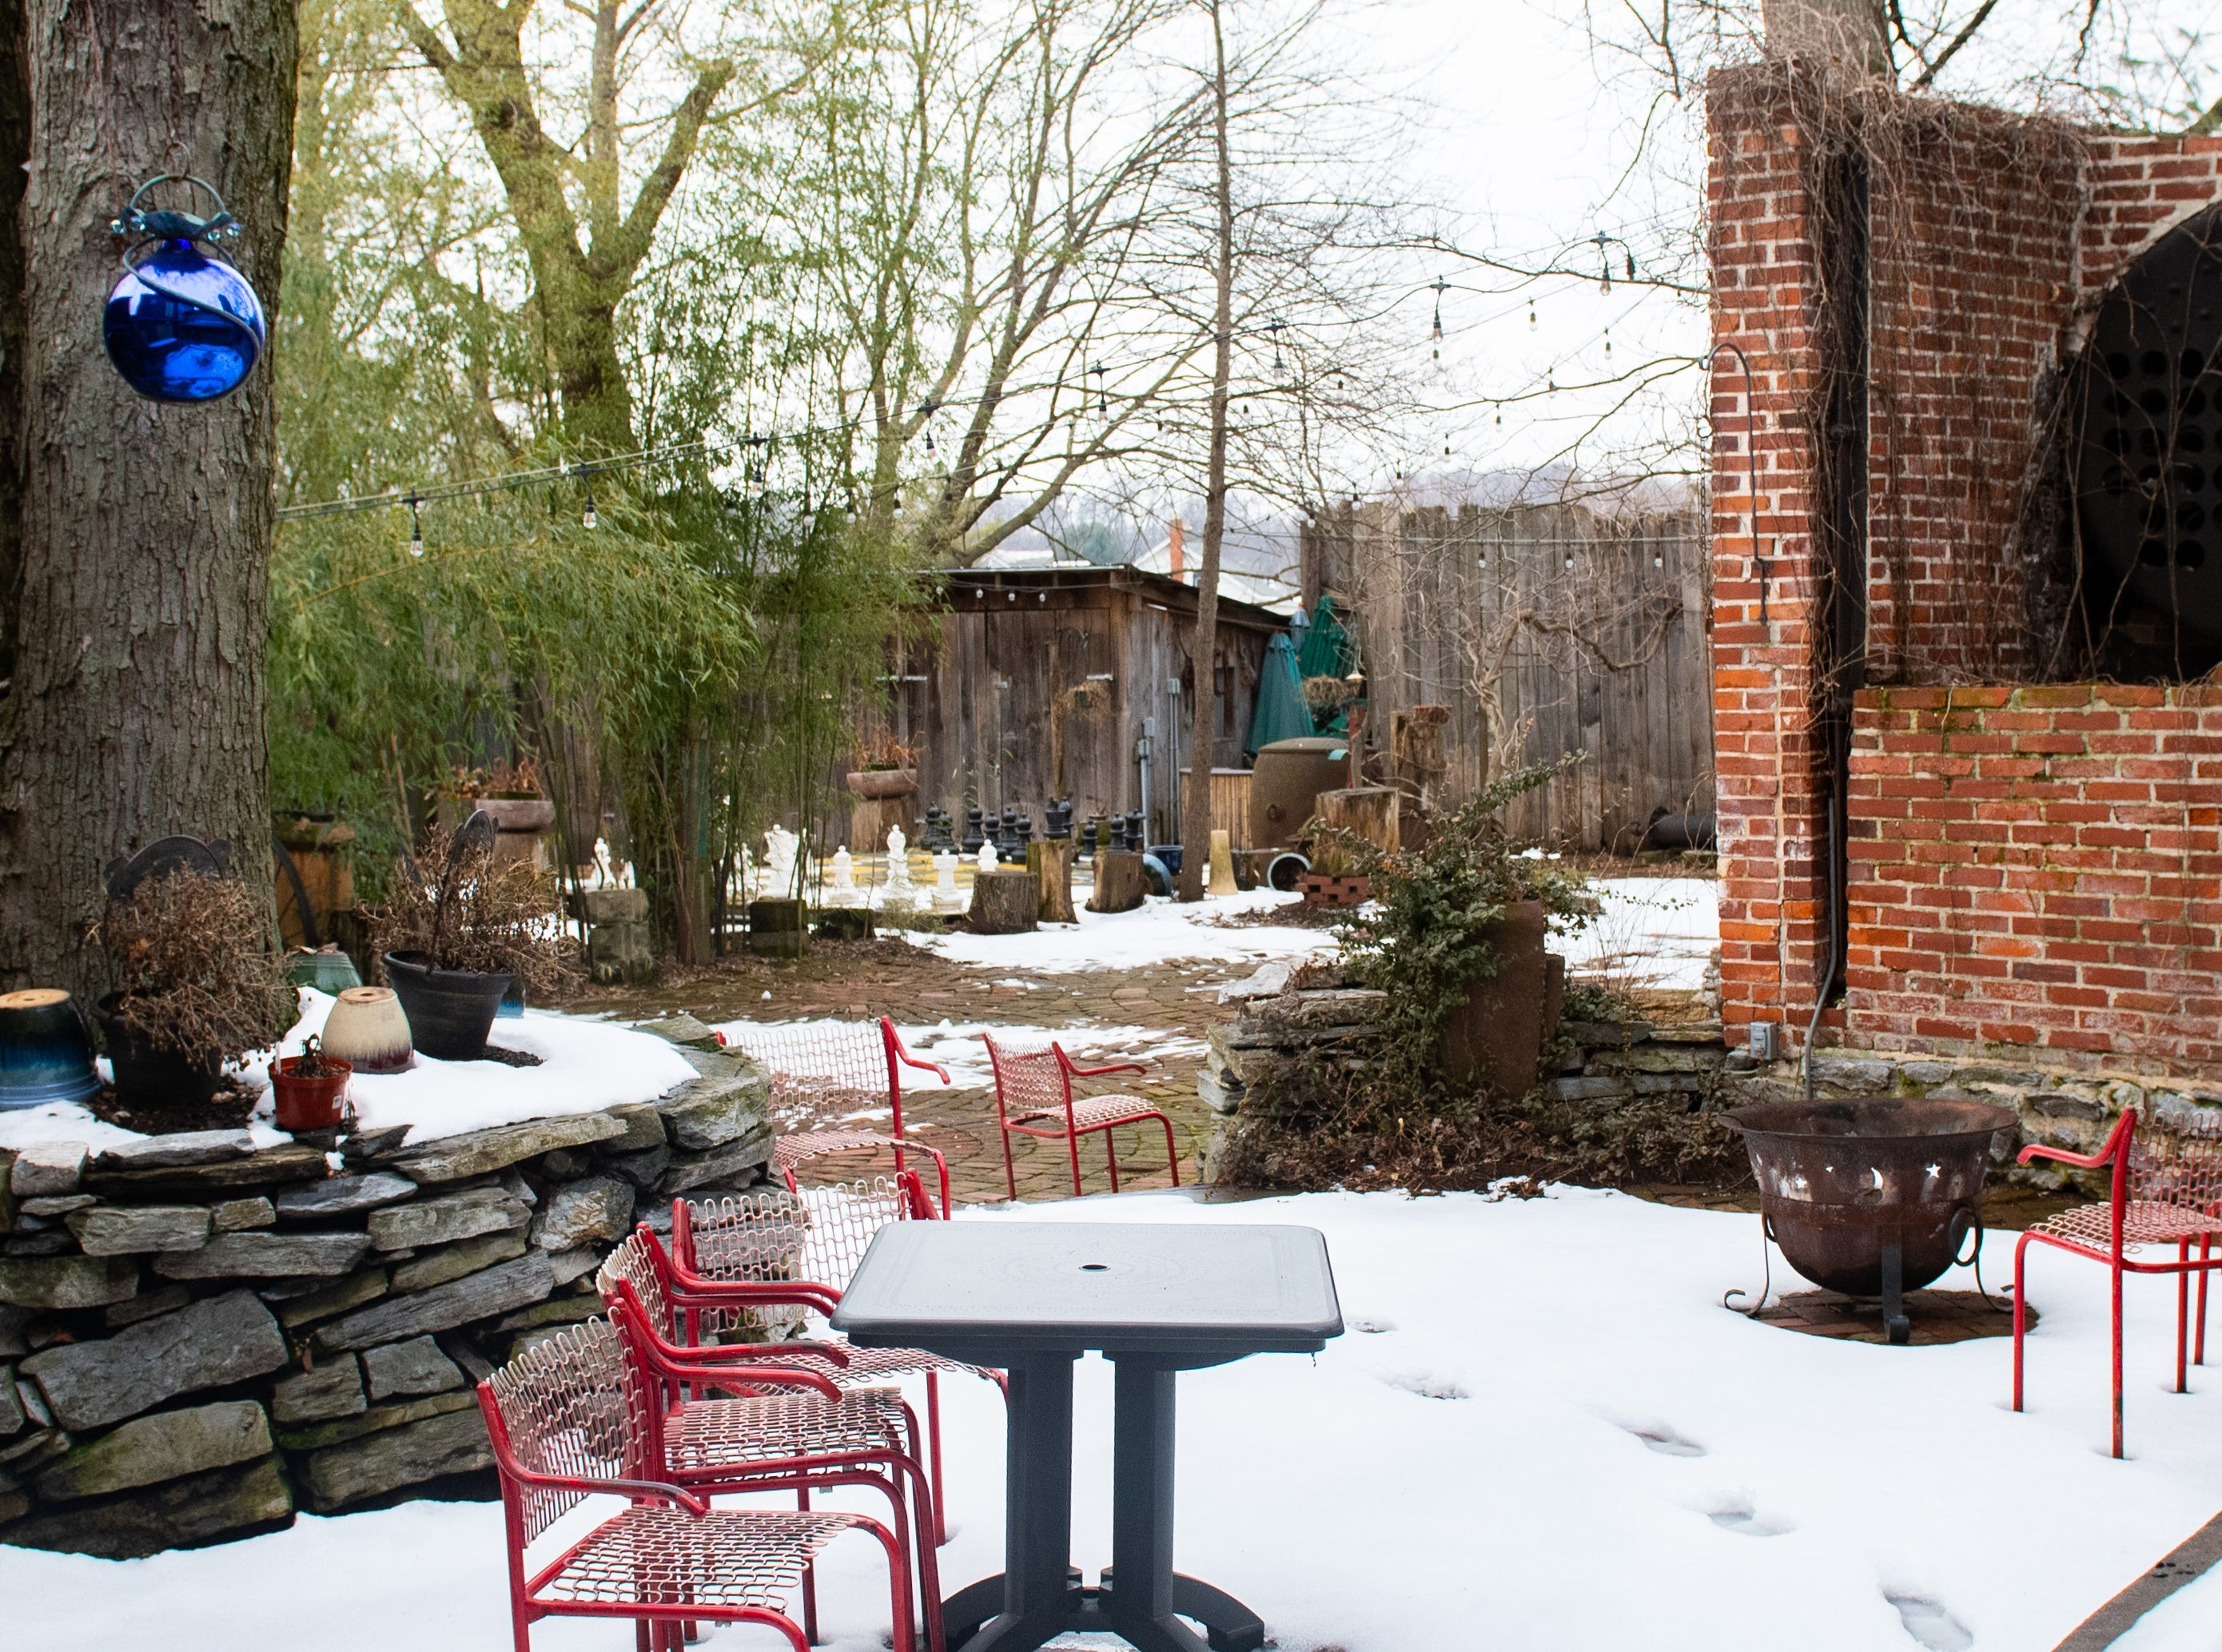 This is the Biergarten of Bube's Brewery. When it's not cold outside, patrons sit outside and enjoy the weather. Chef Alex Brown is expecting to host pig roasts and clam bakes in the 120-seat Biergarten during the warmer months, February 22, 2019.